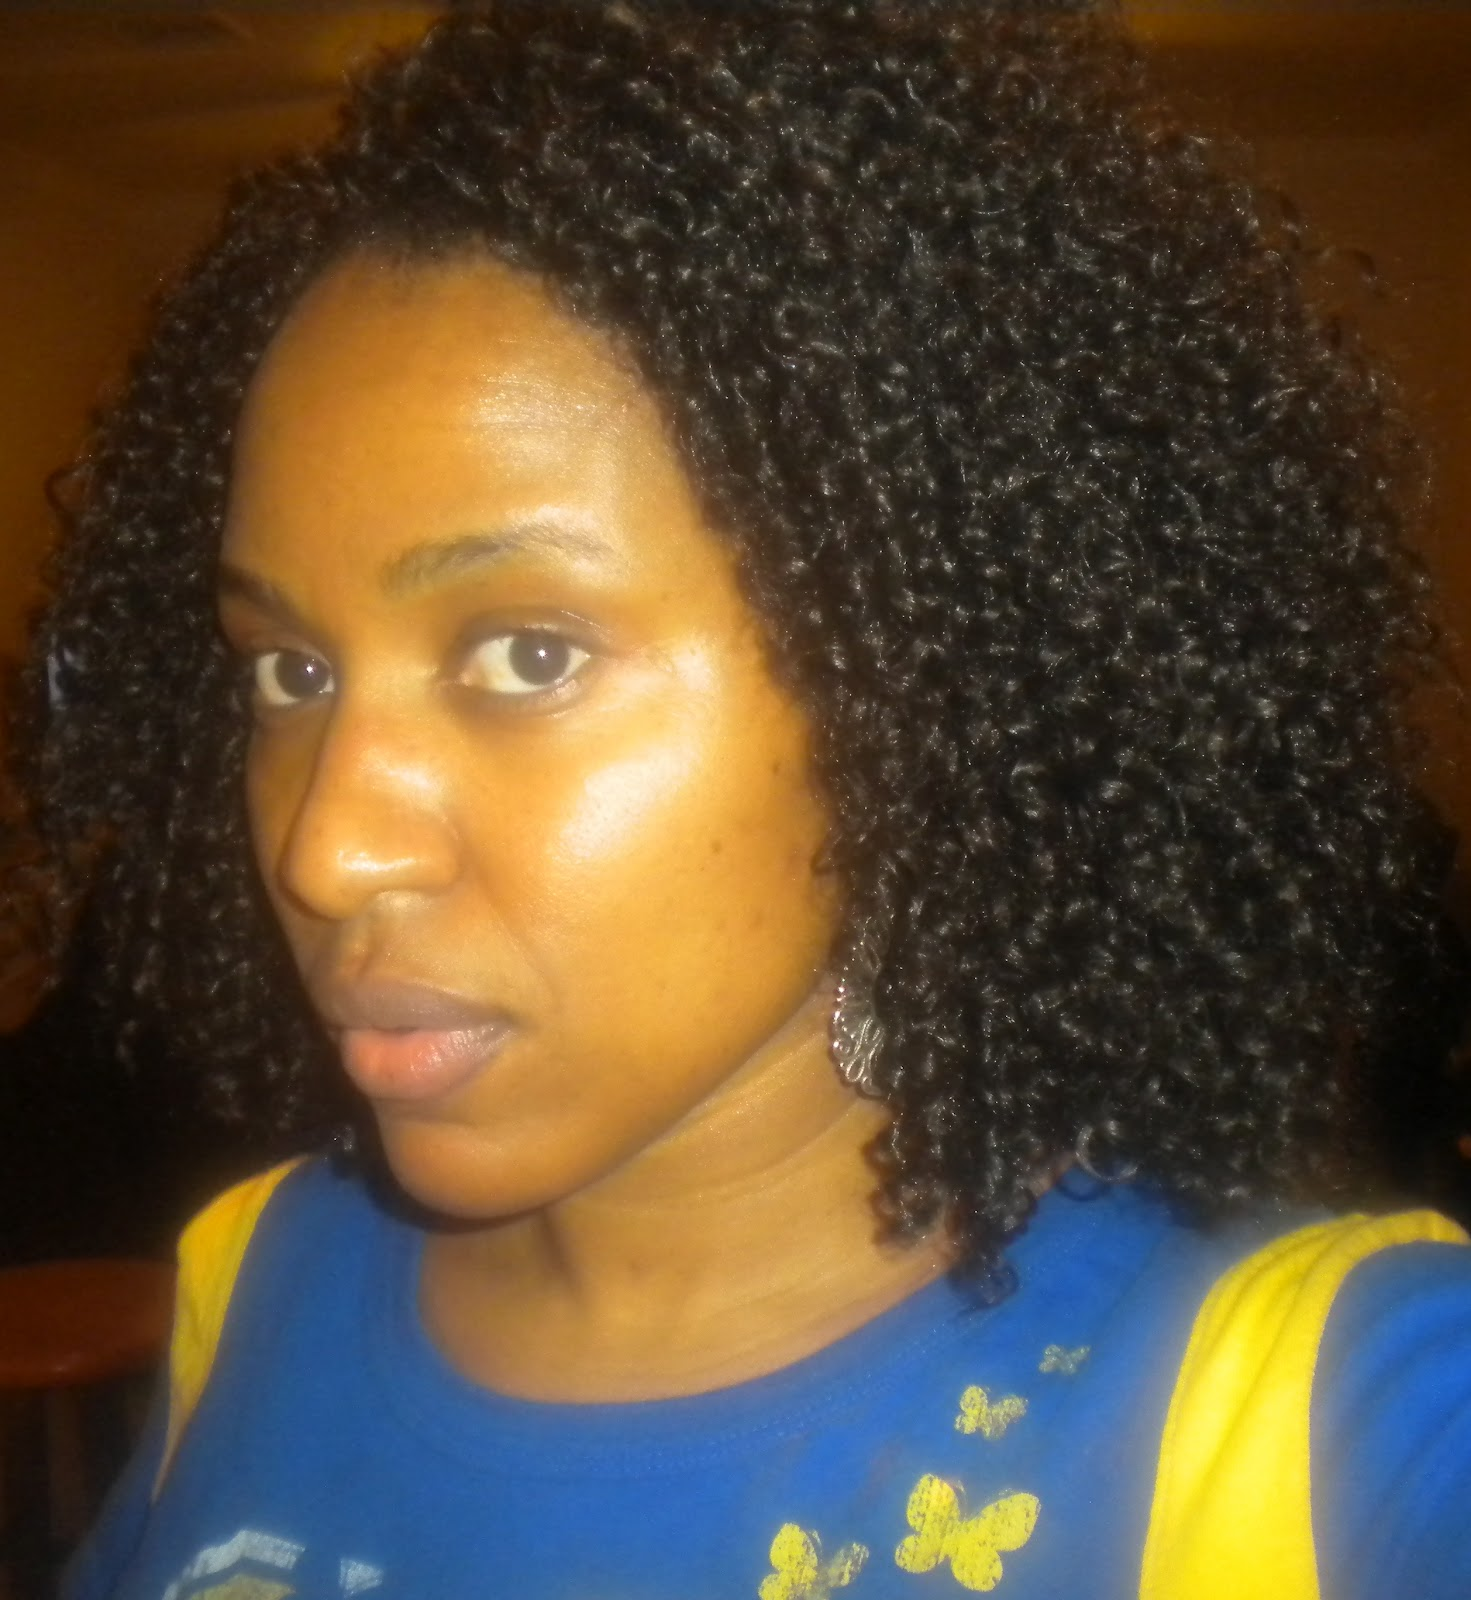 Crochet Braids With Curly Hair : lauren dickbernd, overland park ks